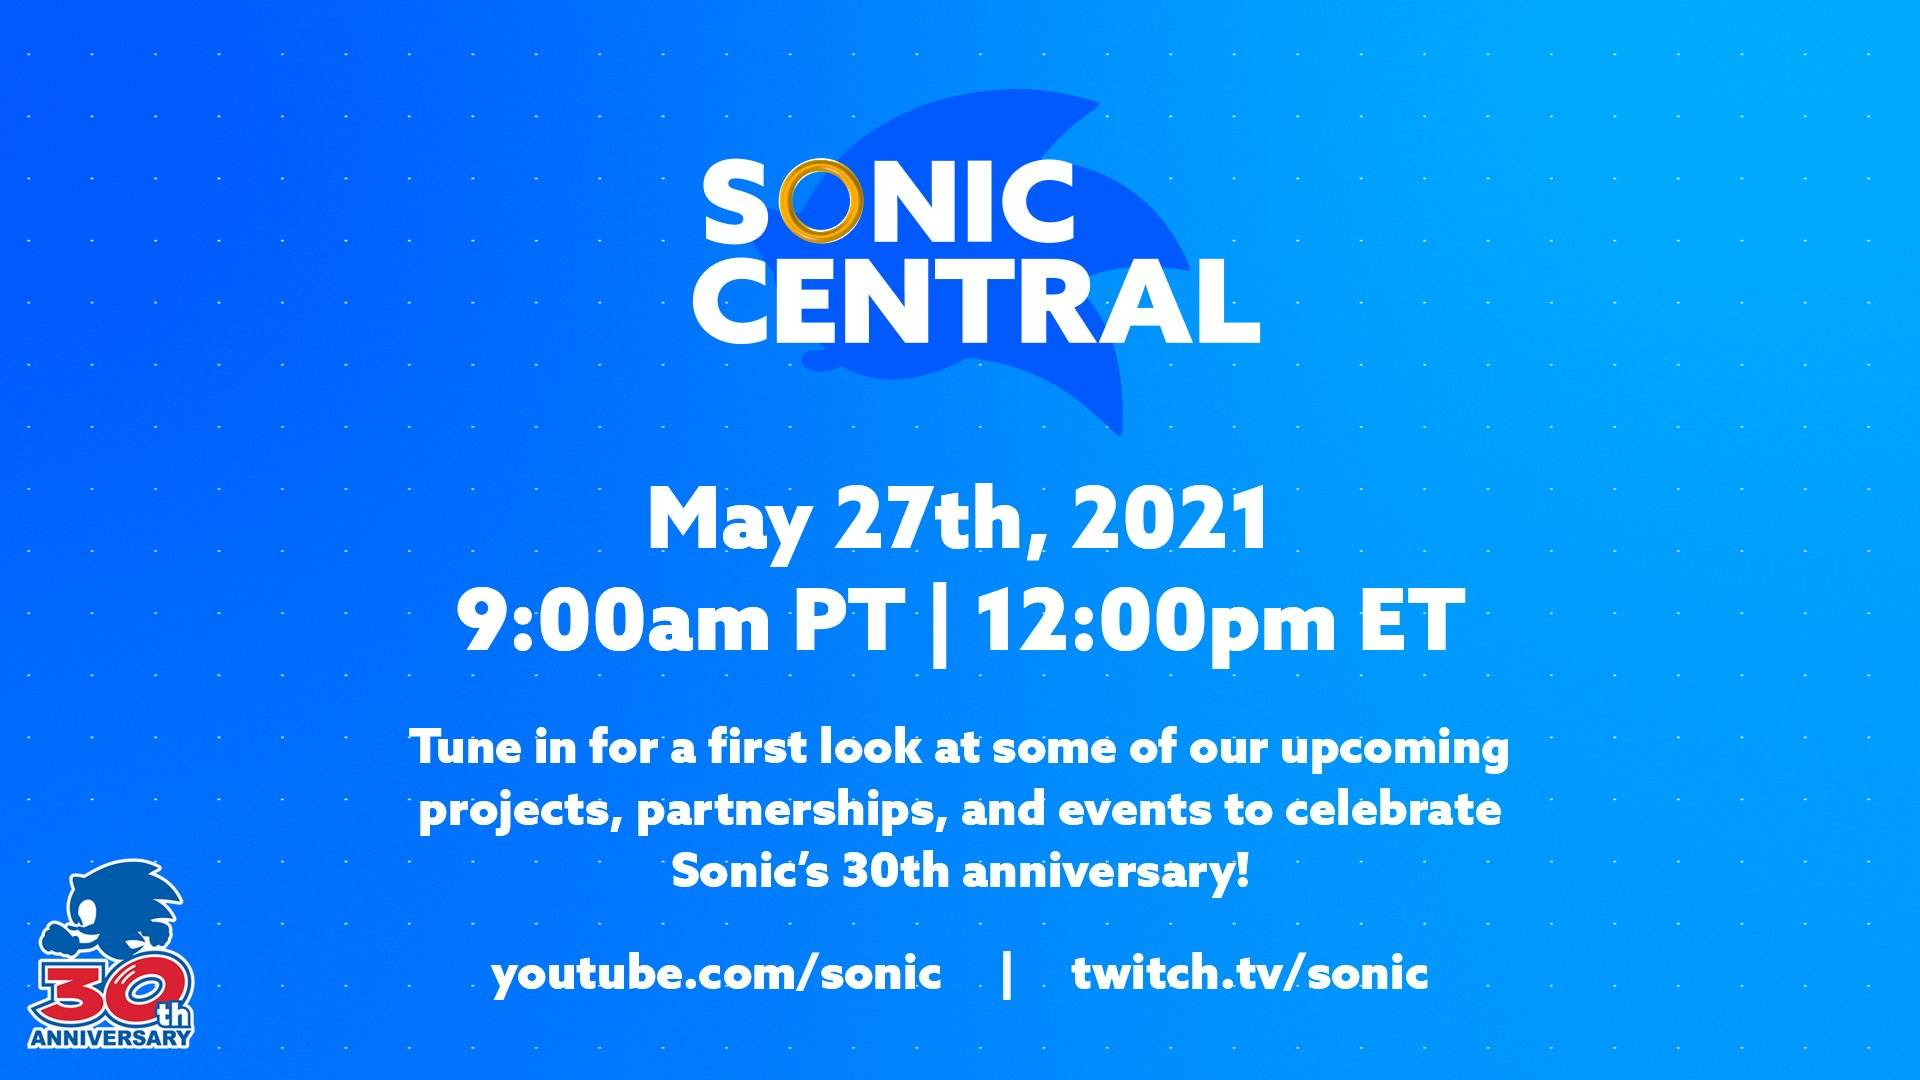 Sega is hosting a Sonic virtual event this week with a first look at upcoming projects screenshot